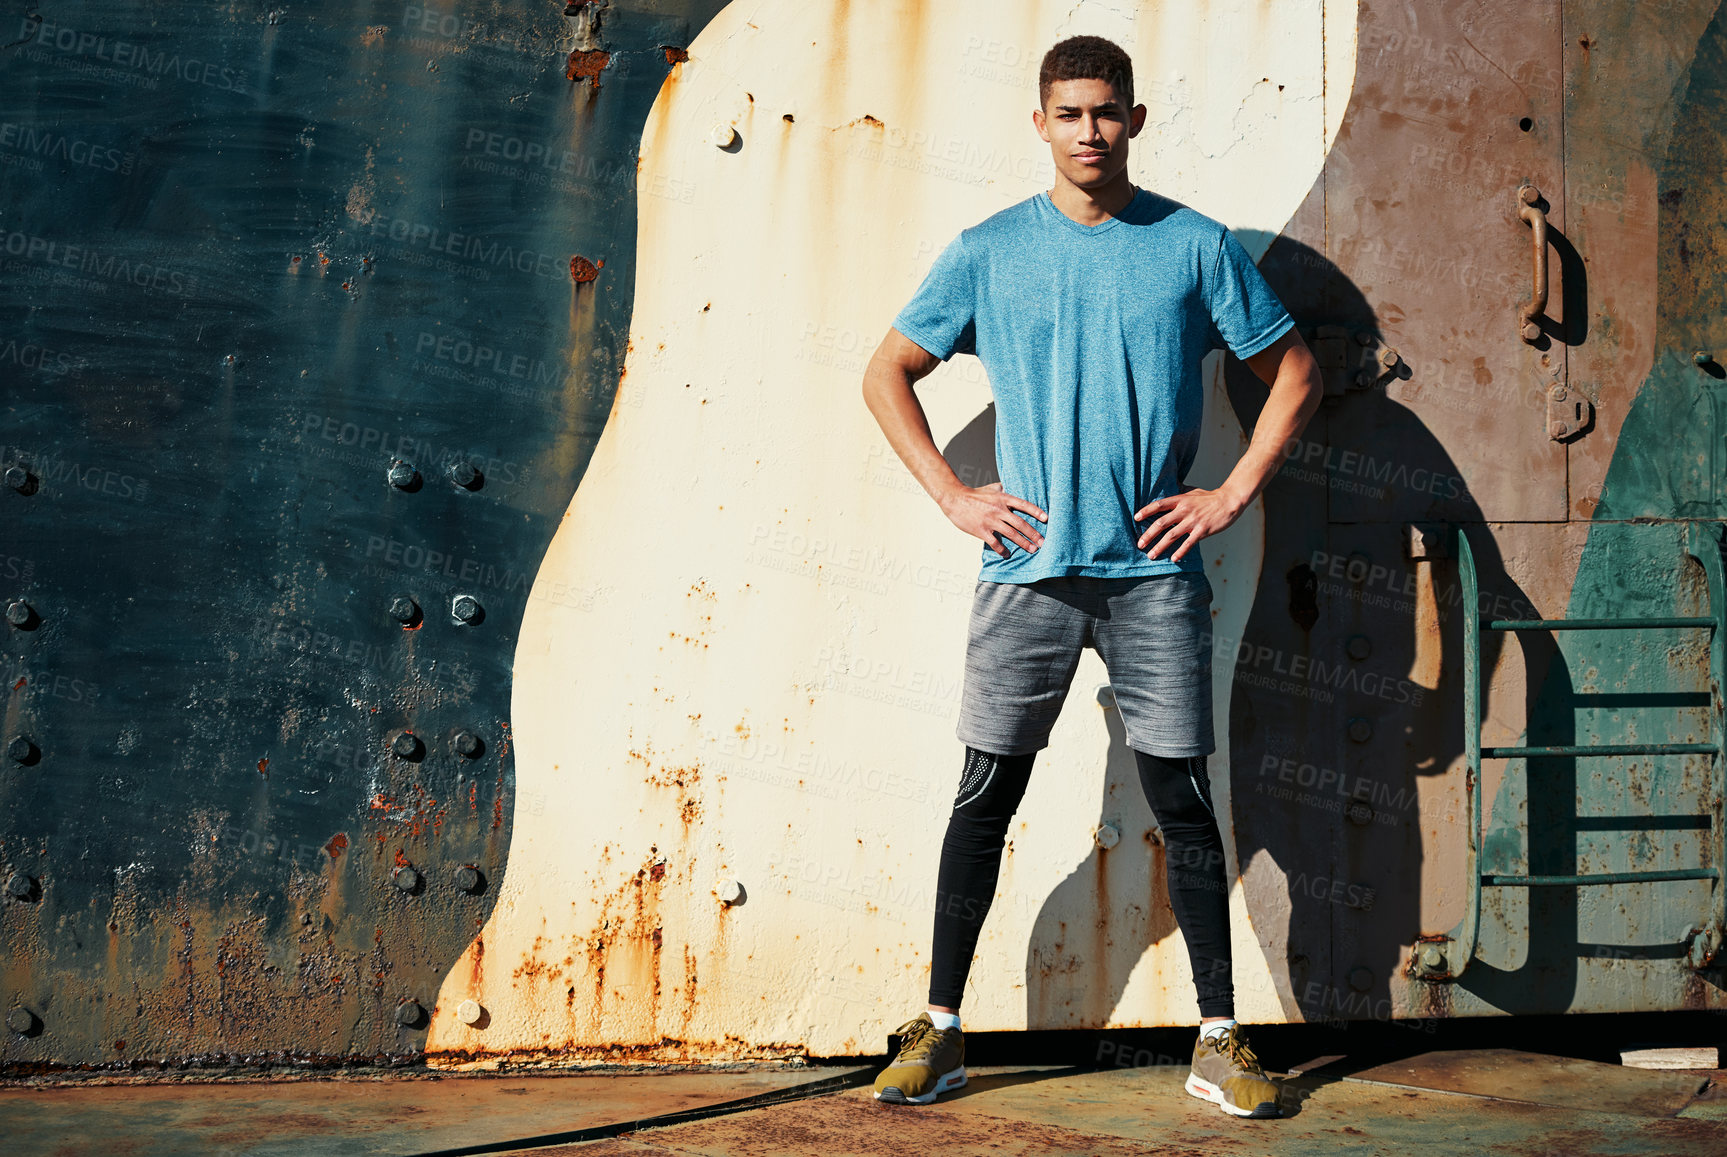 Buy stock photo Shot of a handsome young man posing with his hands on hips while out exercising